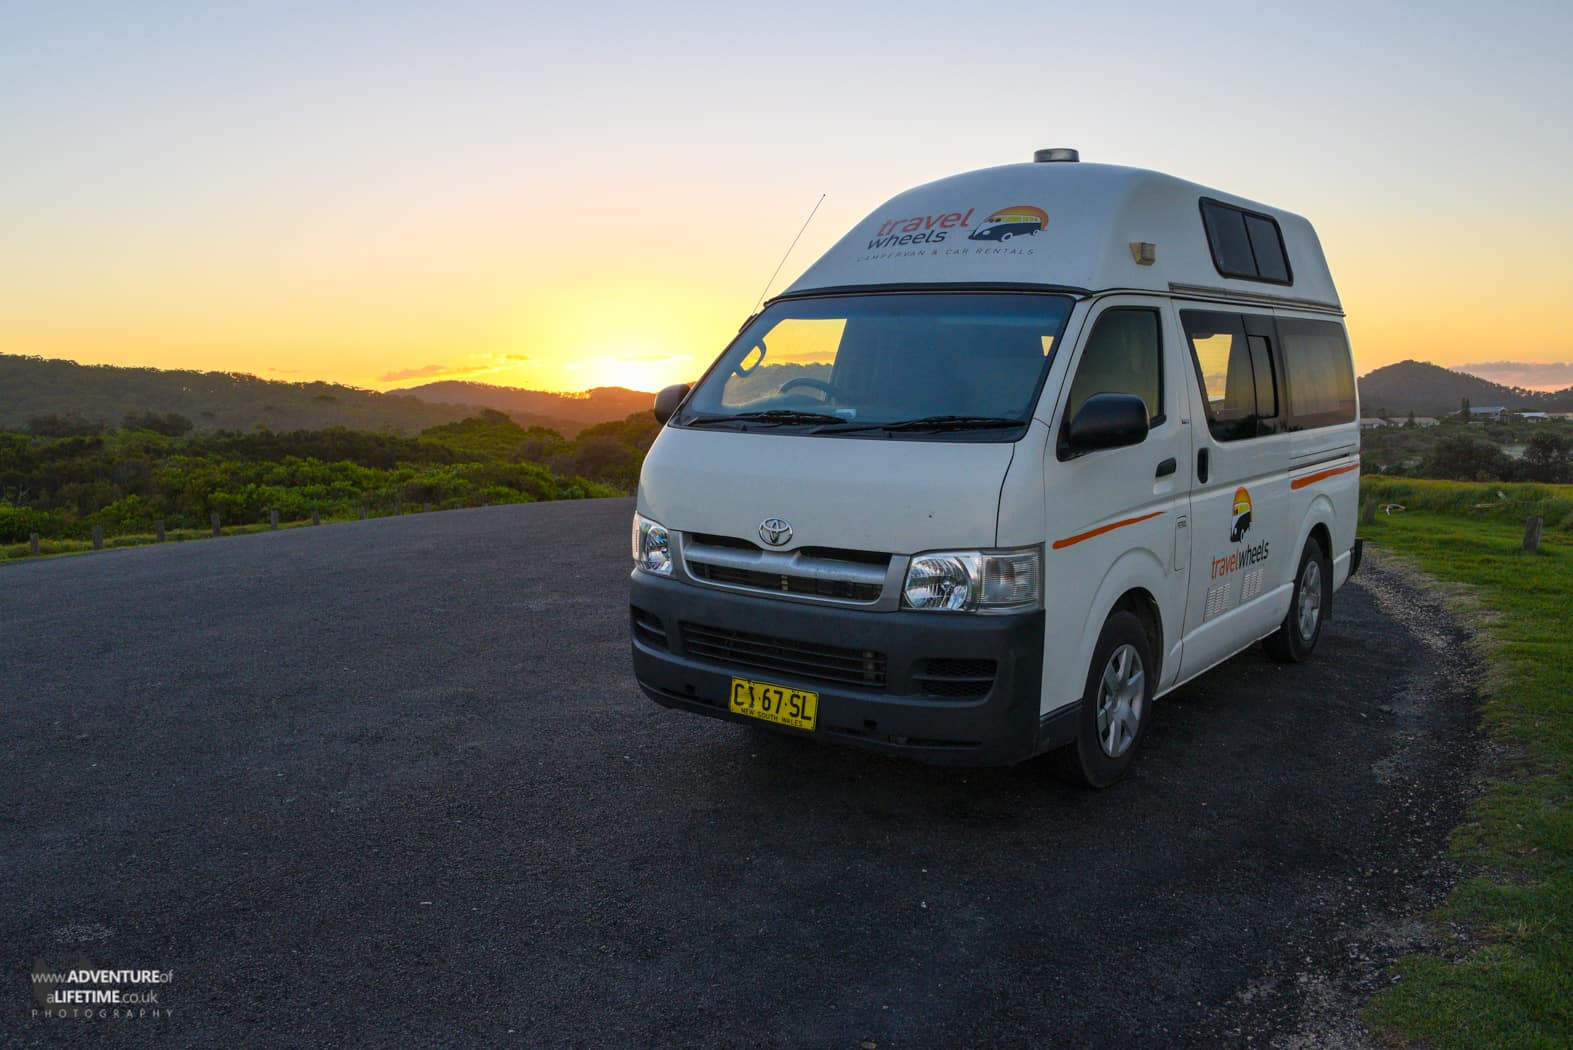 Murtle, our campervan from Travel Wheels